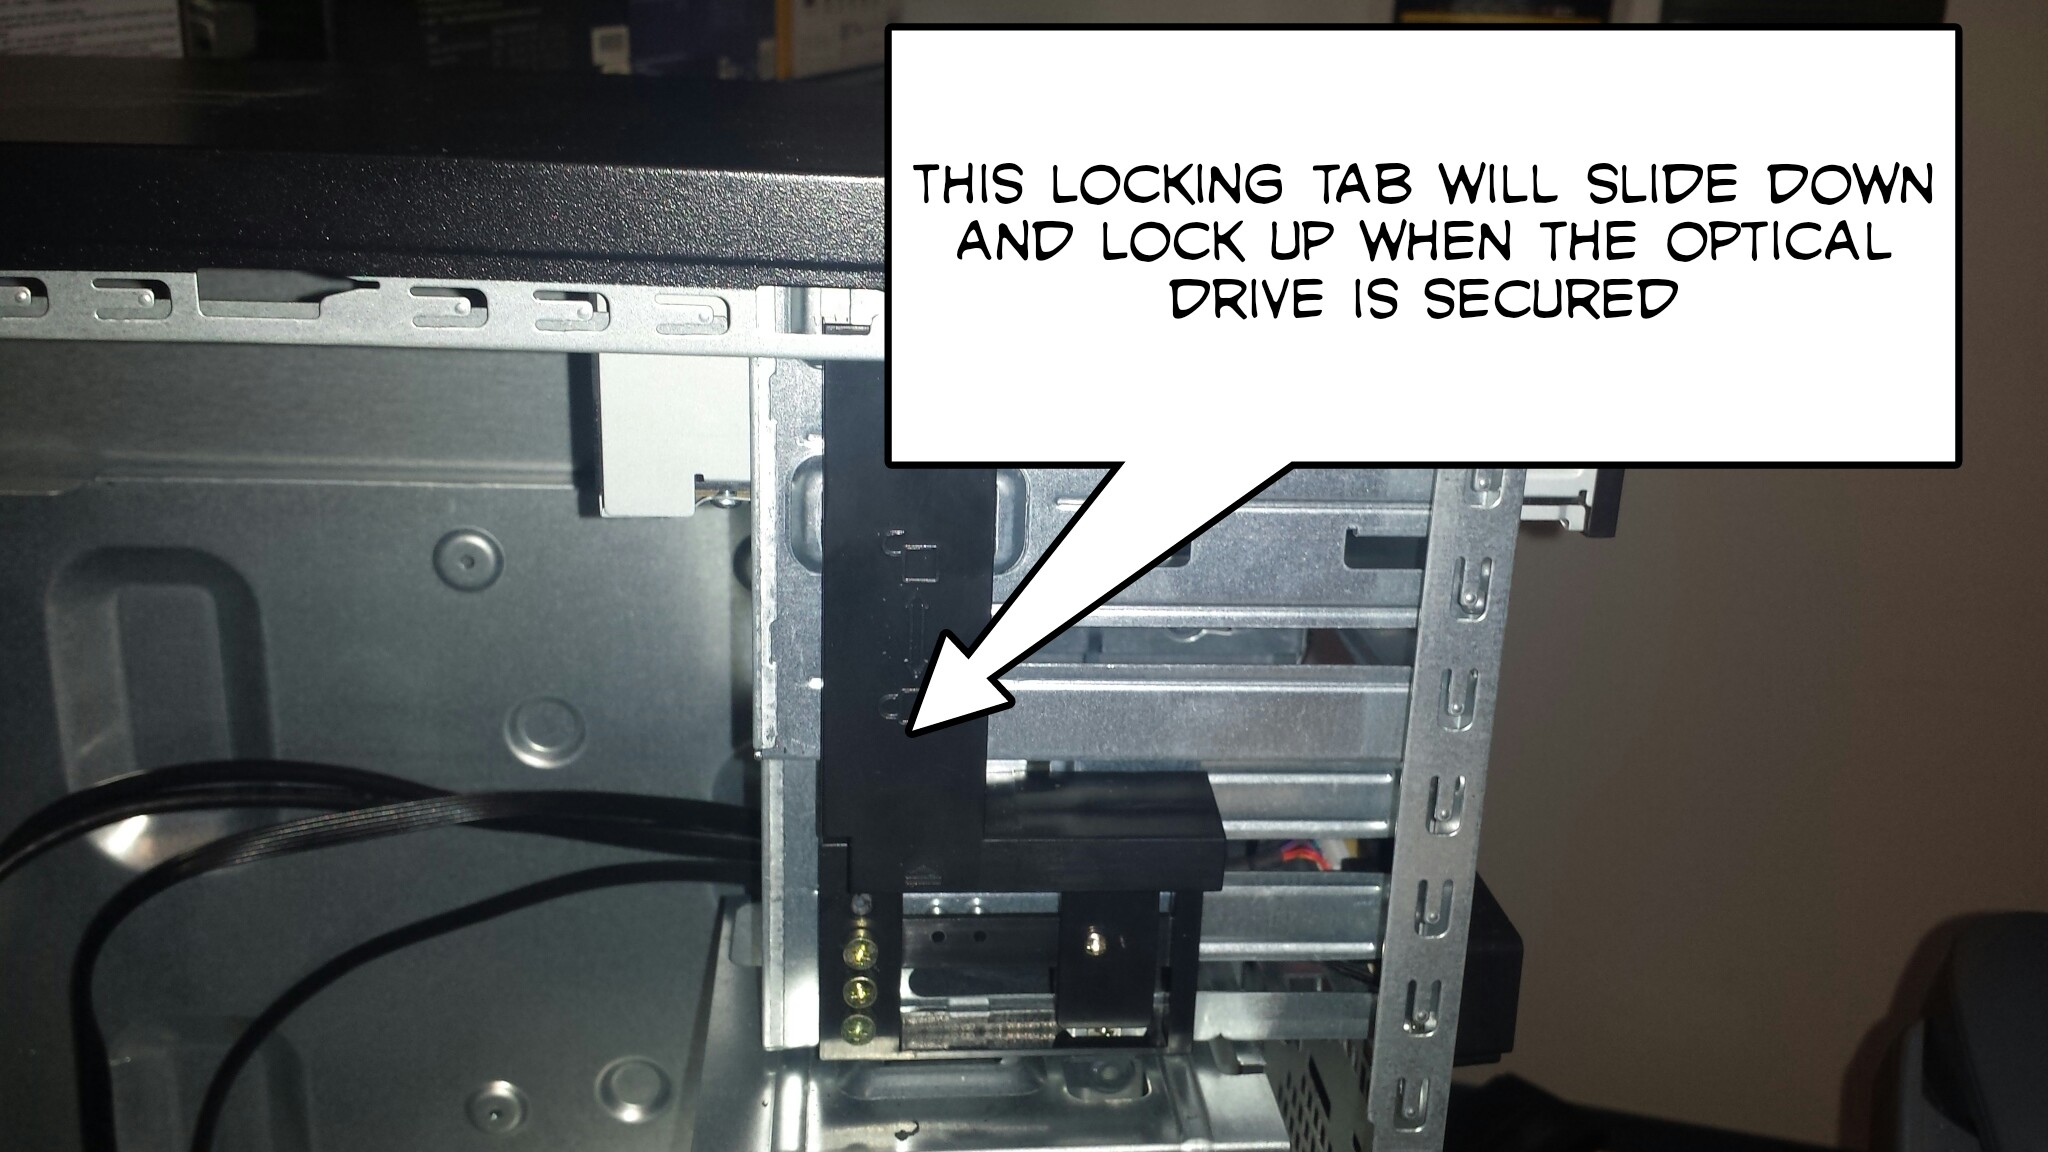 How To Install A 5 25 Quot Optical Drive On The Antec Nsk3180